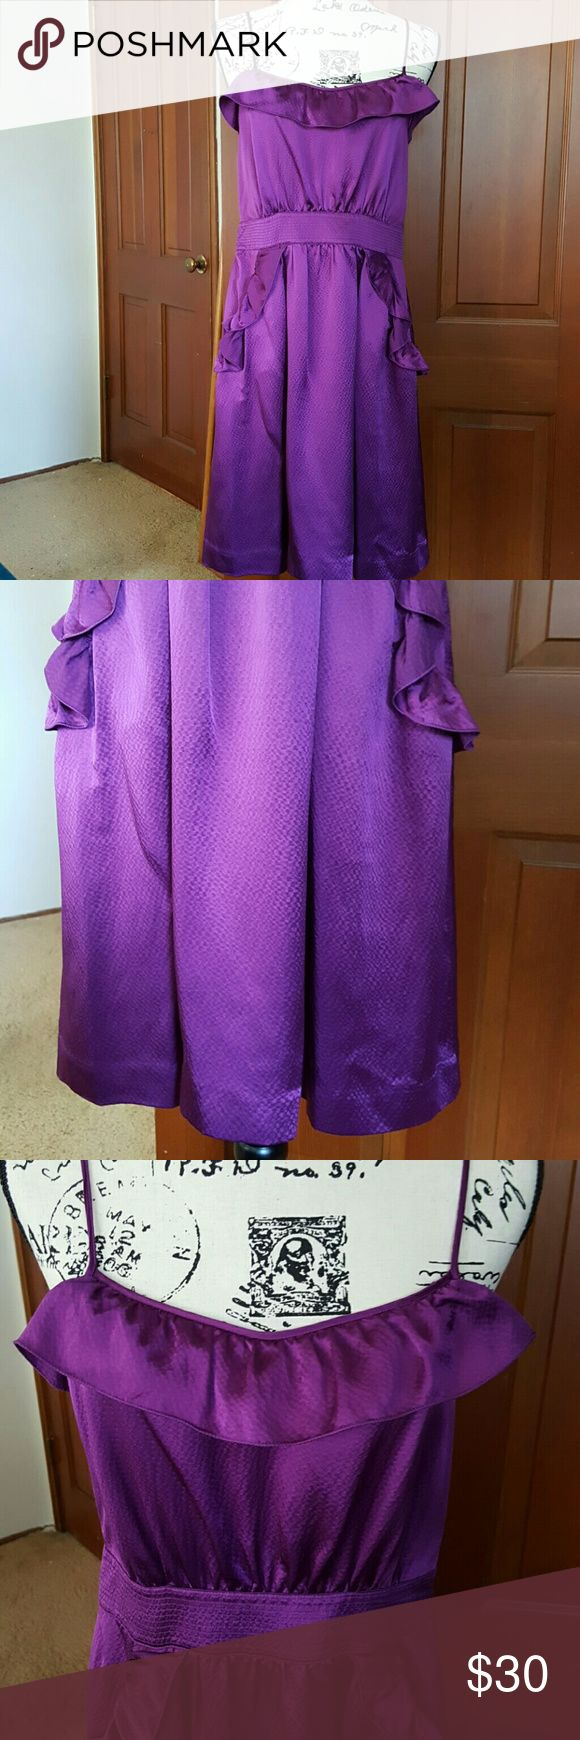 Marc By Marc Jacobs purple dress 100% silk size 6 Gorgeous purple a hundred percent silk Marc Jacobs purple dress , cute Pockets with little ruffles and a tie in the back the straps are in perfect condition so is the dress . Great dress for summer a party or going out with the girls .  Length from zipper 29 link from stripe 36 Marc Jacobs Dresses Midi